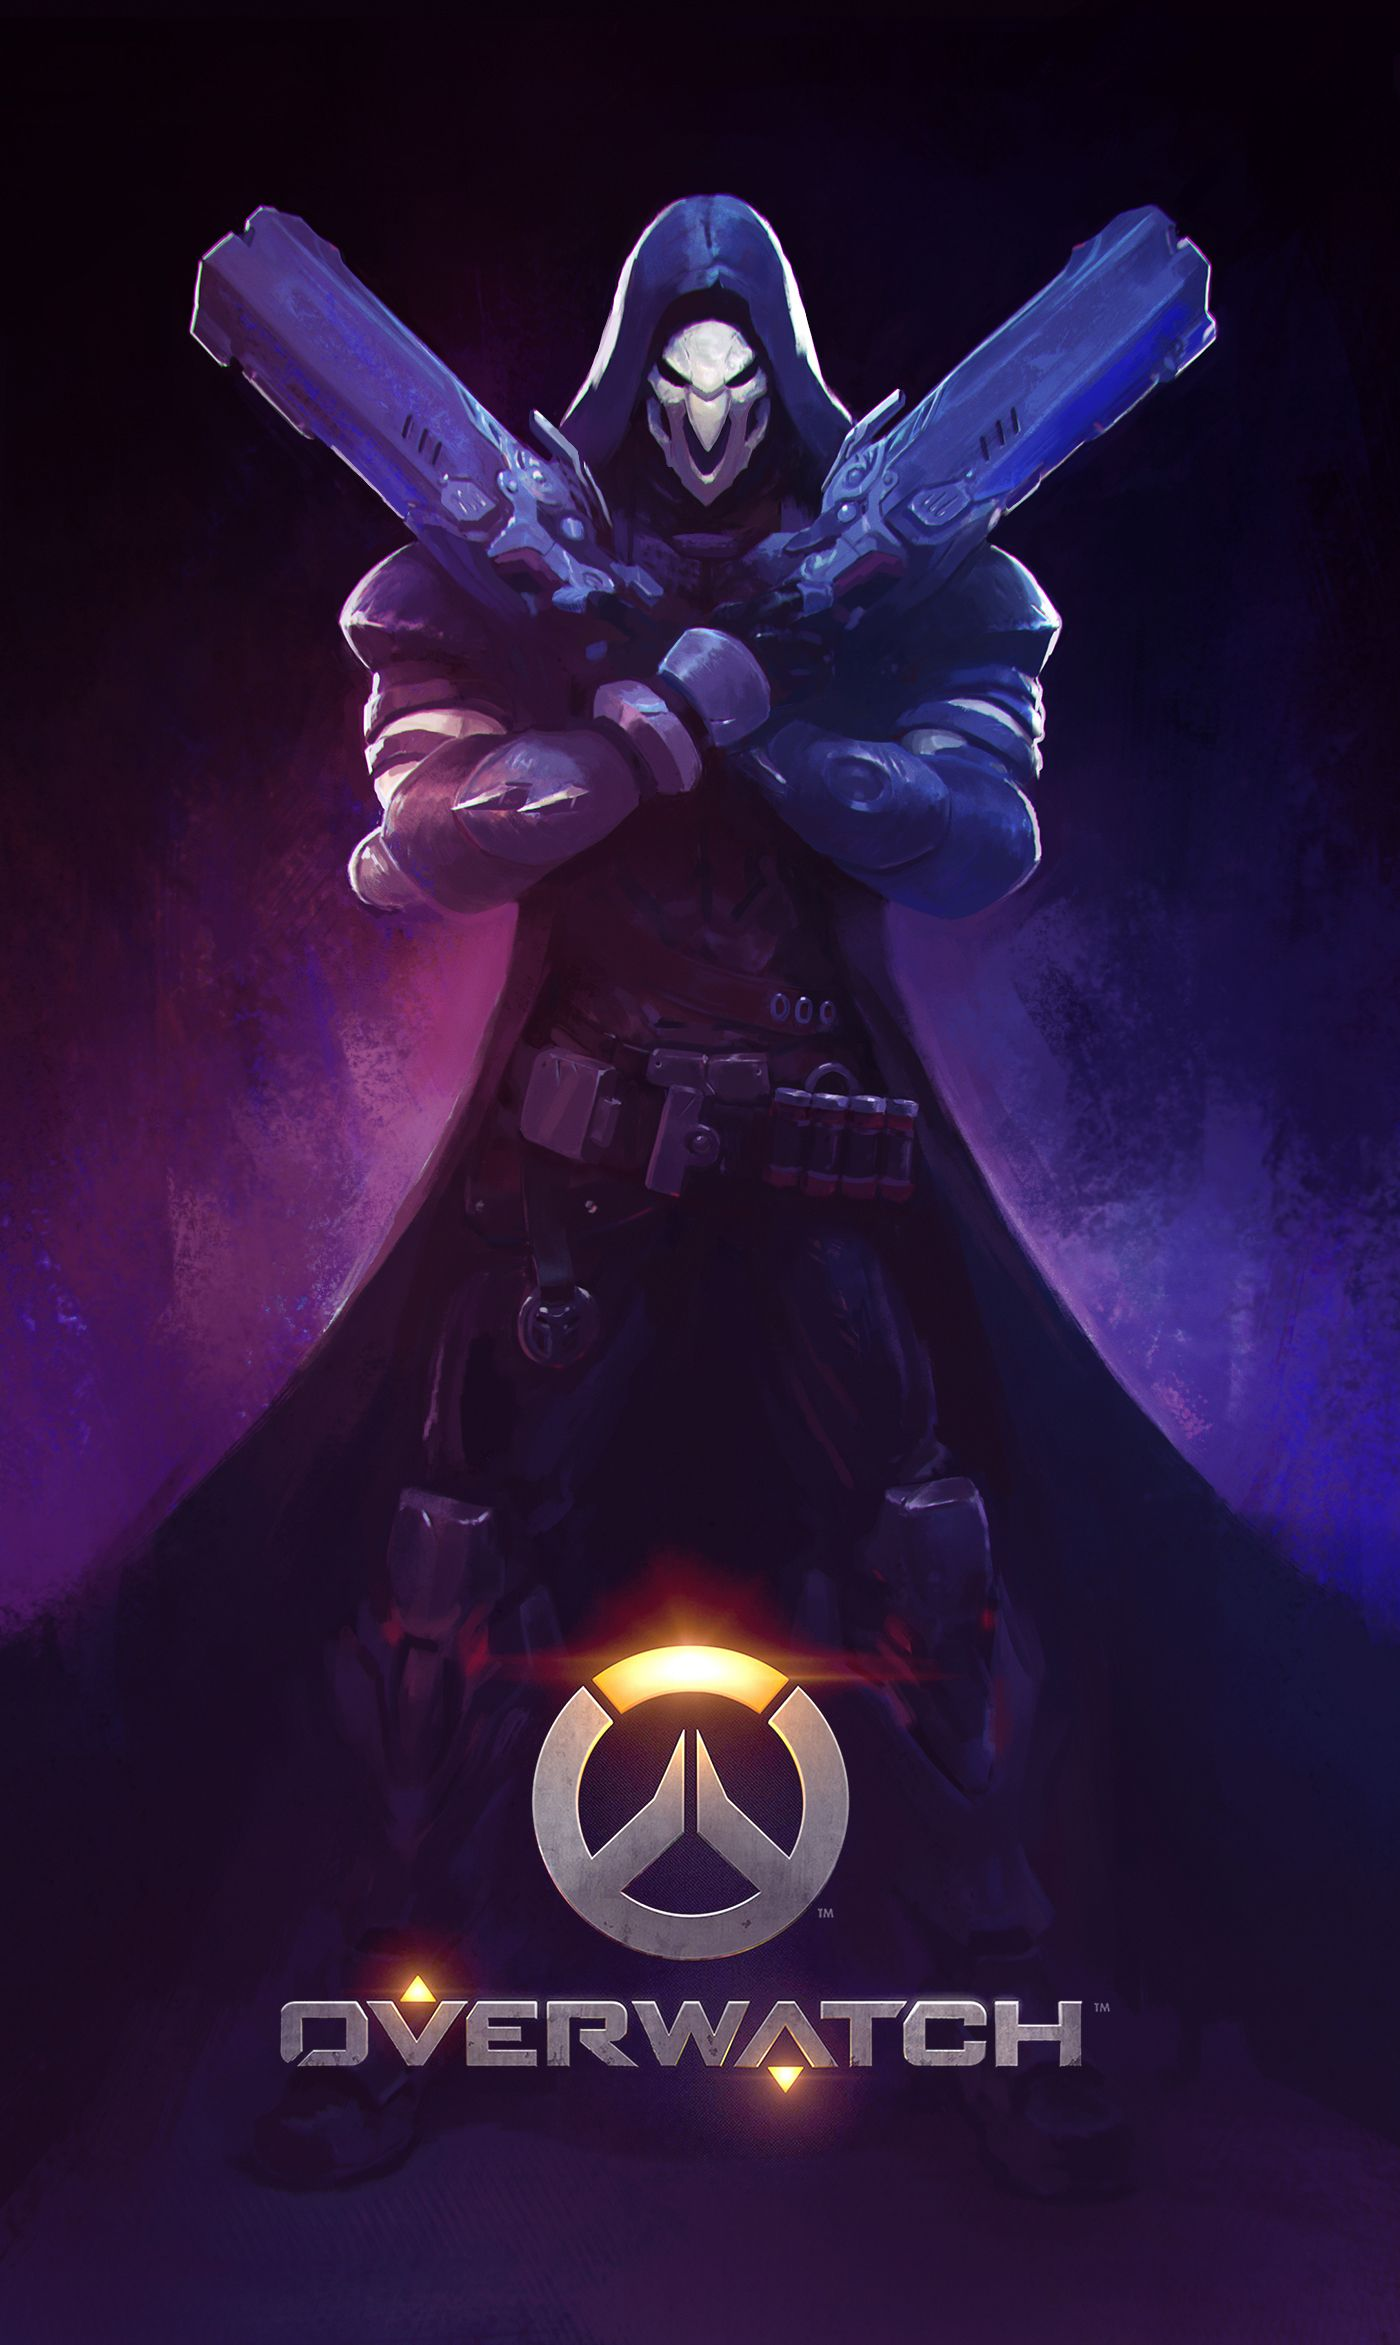 Overwatch Reaper by Sione Salesa https//www.facebook